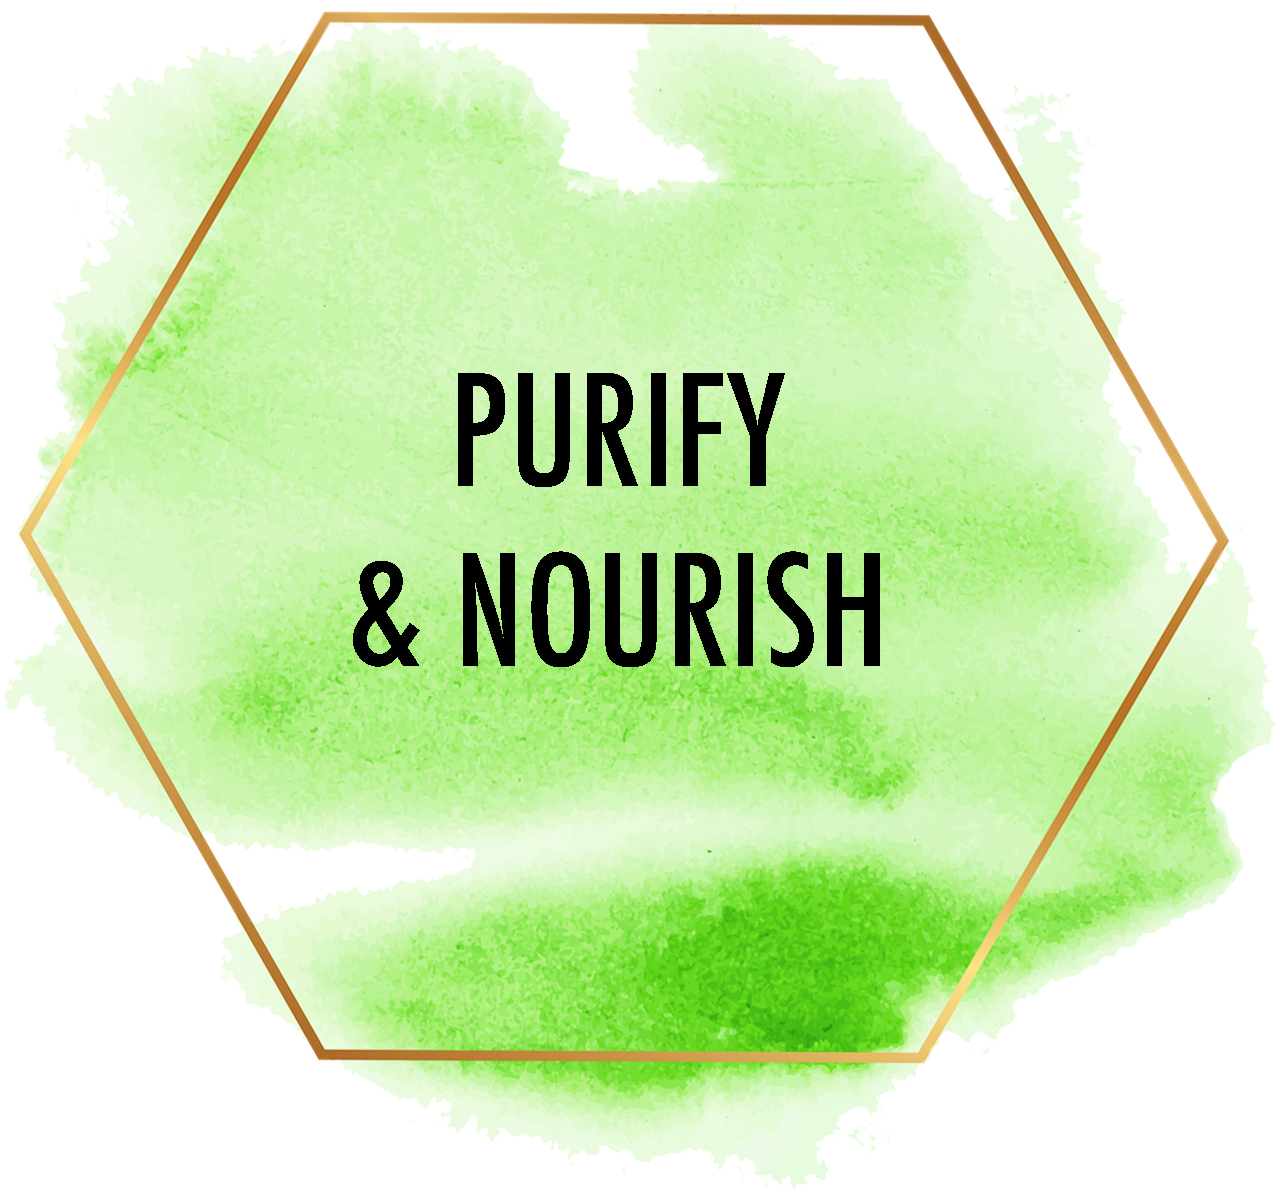 purify and nourish.jpg